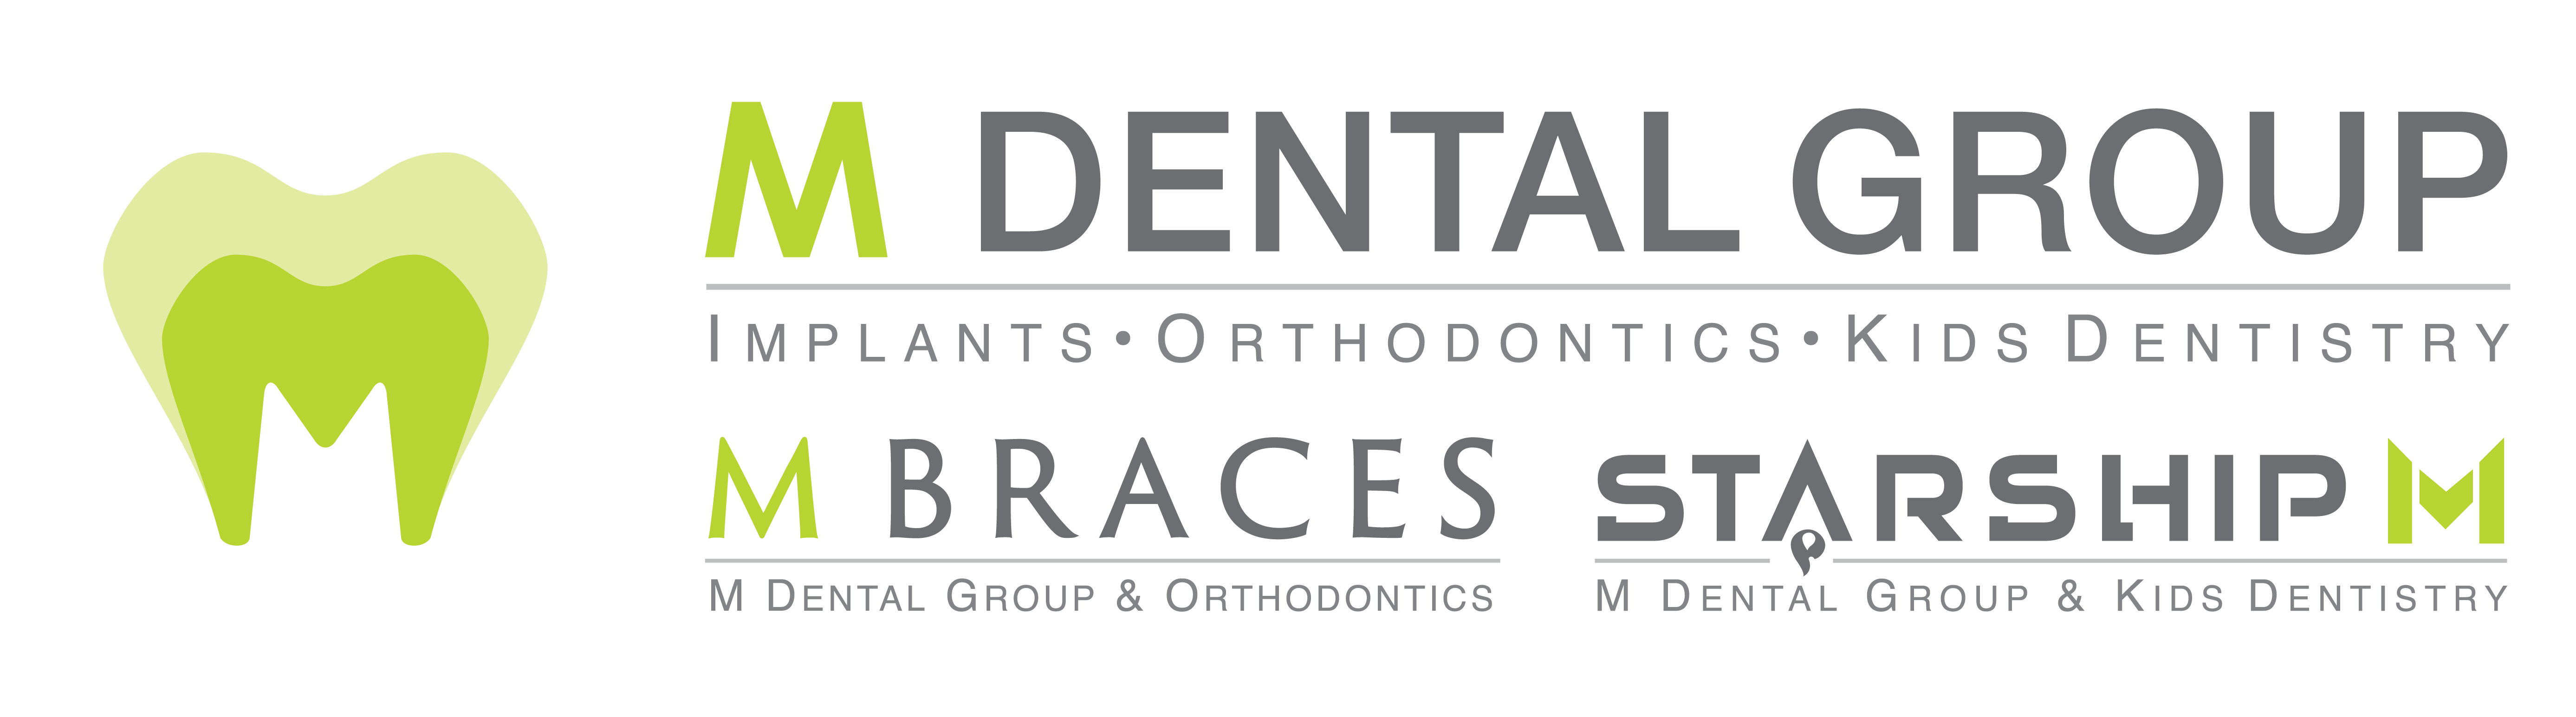 M Dental Group Logo